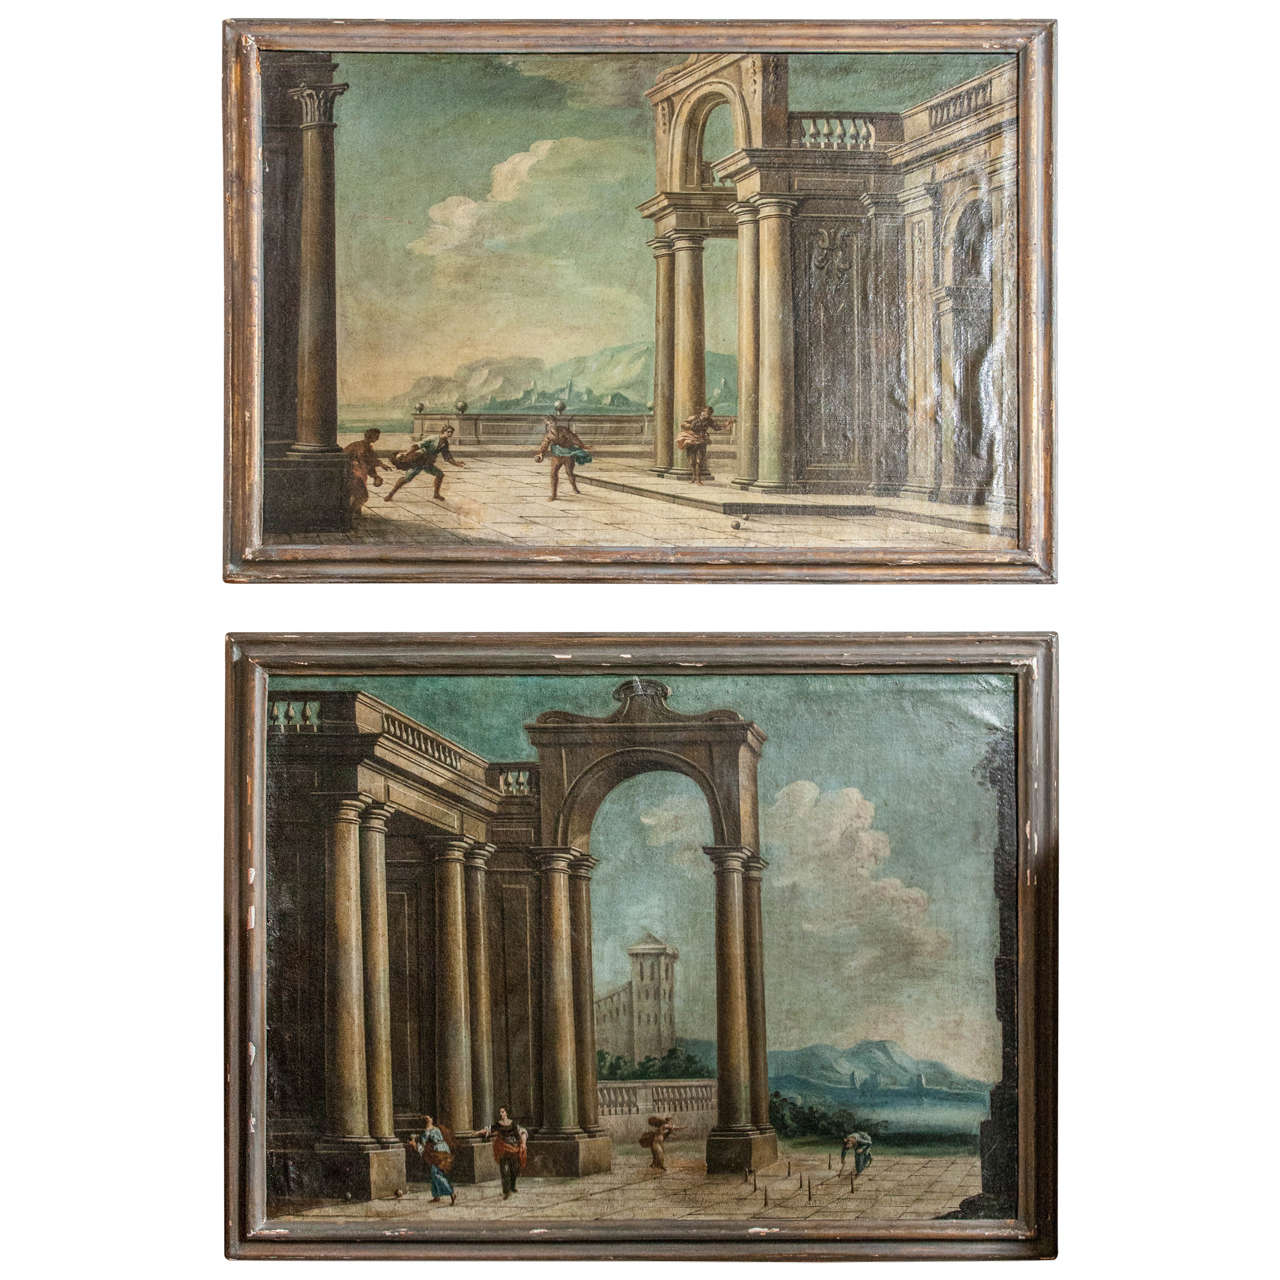 Marvelous photograph of  Century Framed Capriccio Oil on Canvas of Ruins For Sale at 1stdibs with #827249 color and 1280x1280 pixels